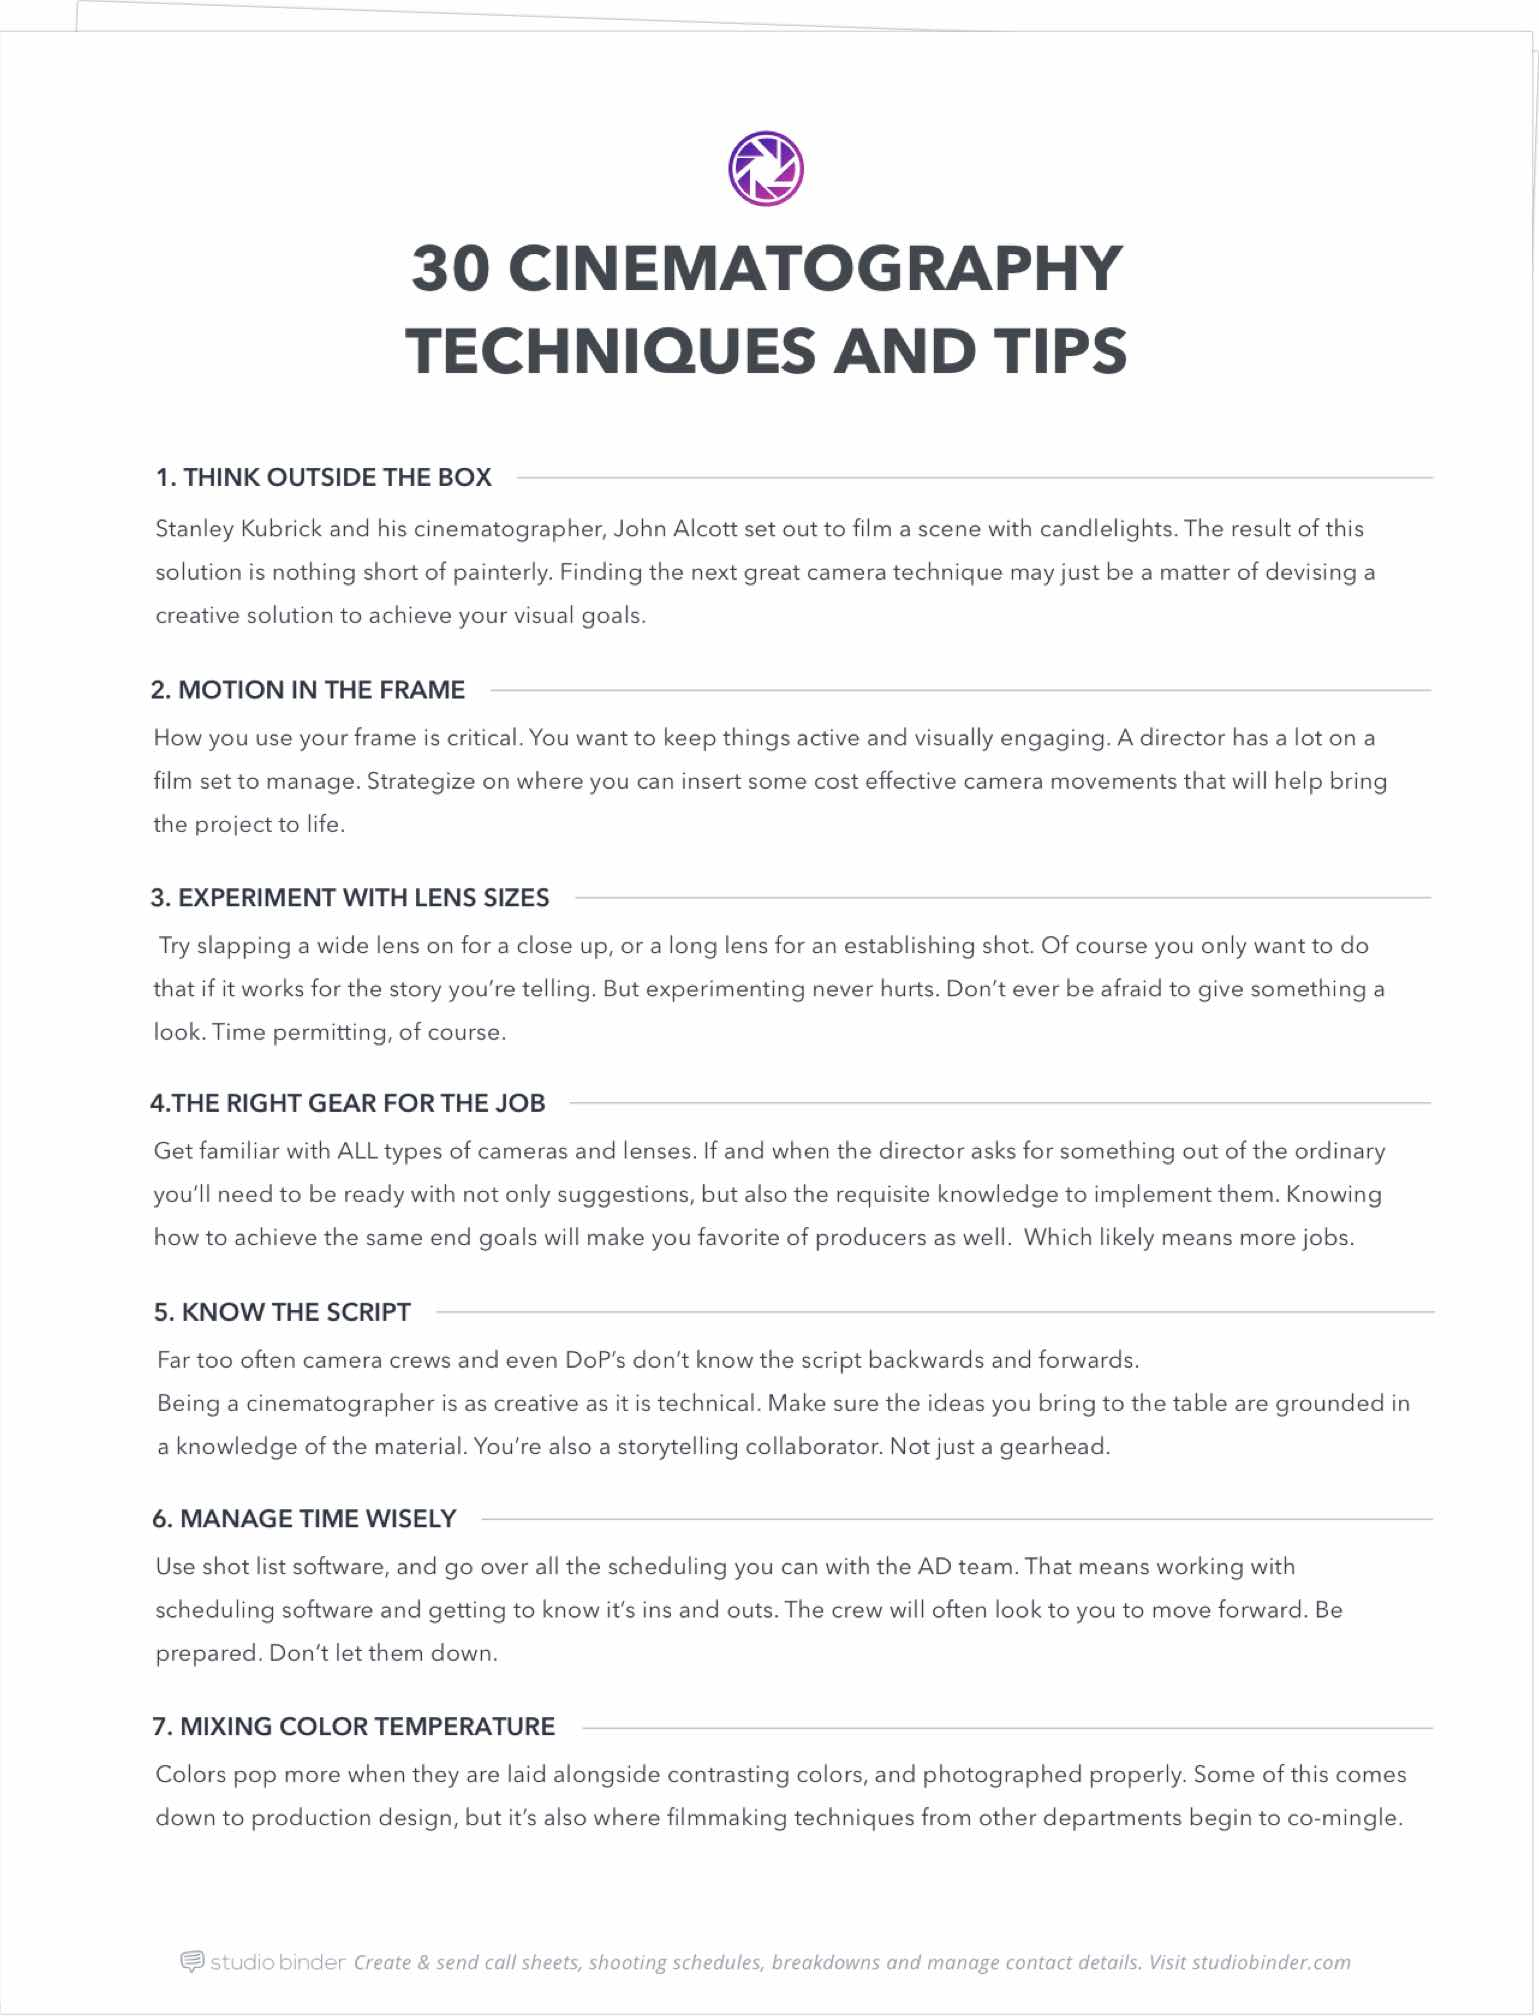 30 Cinematography Techniques & Tips You Didn't Learn in Film